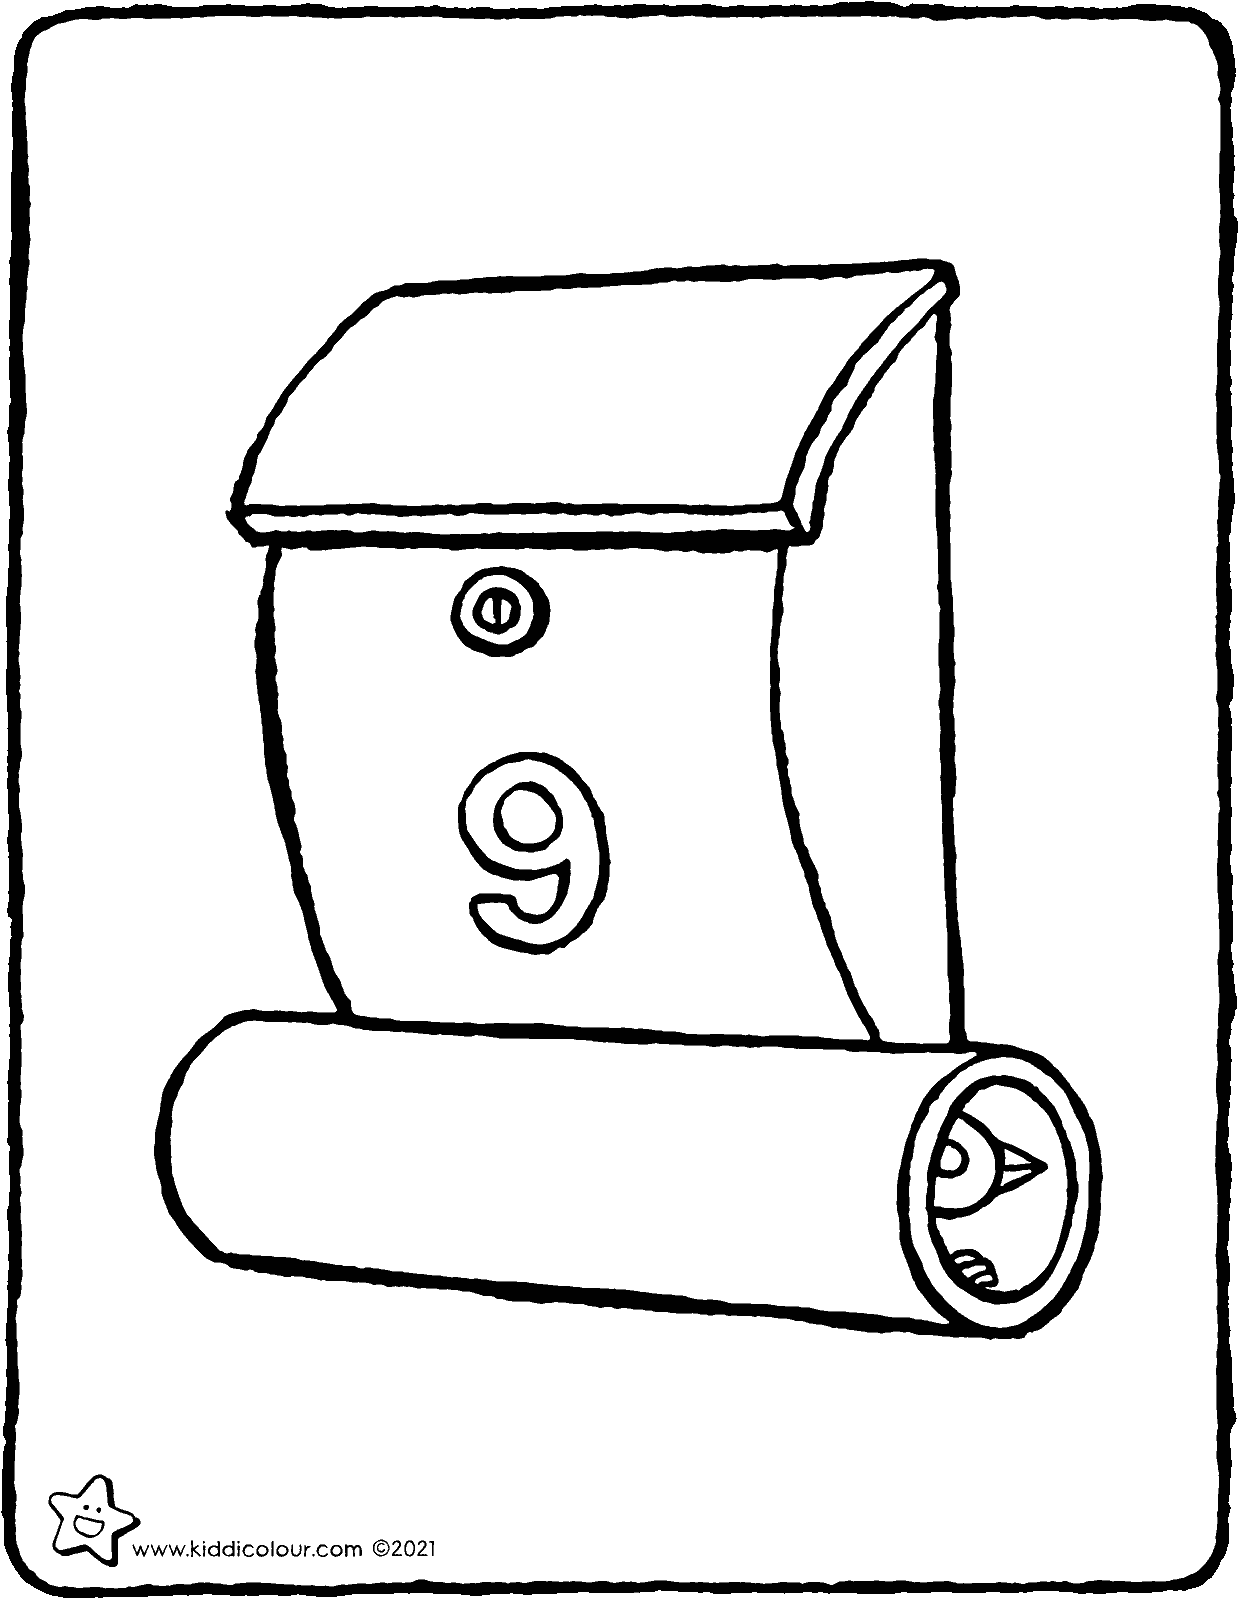 letter box colouring page drawing picture 01V